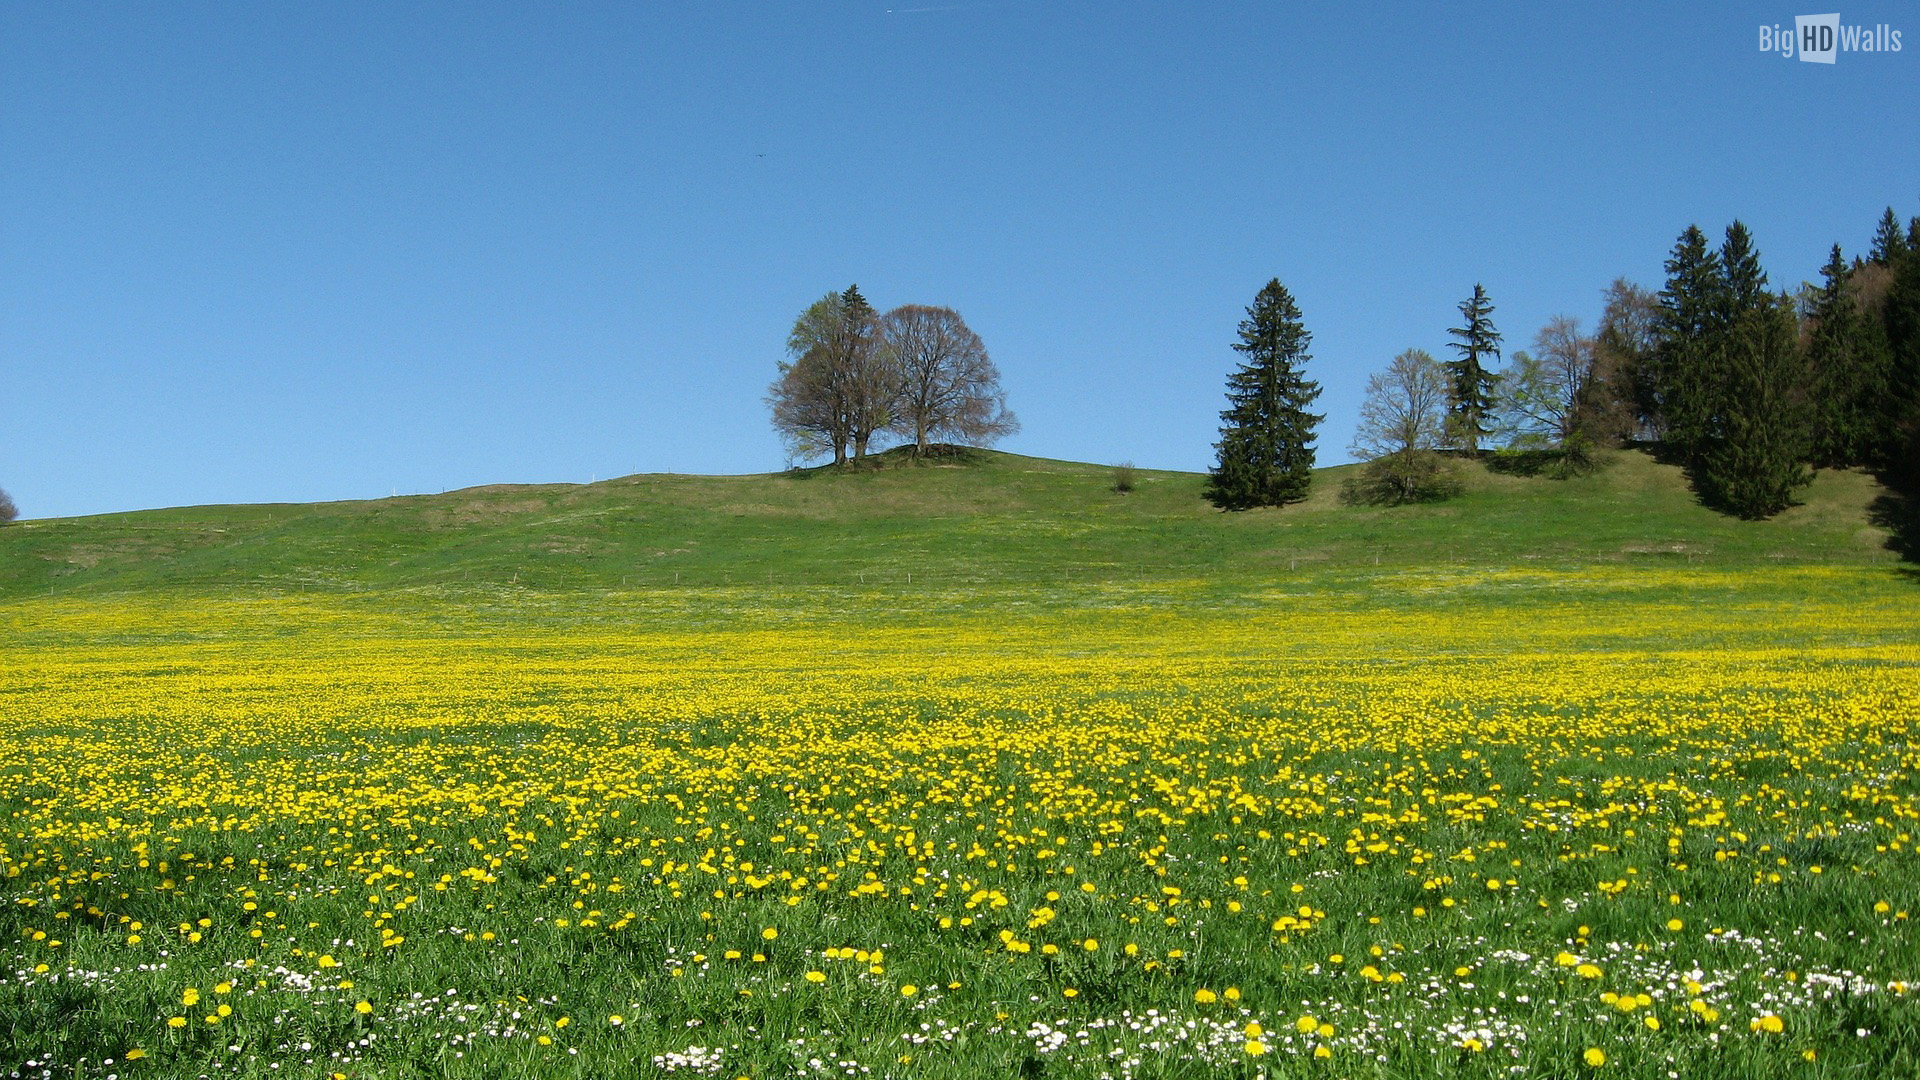 ... Meadow with Yellow Flowers HD Wallpaper